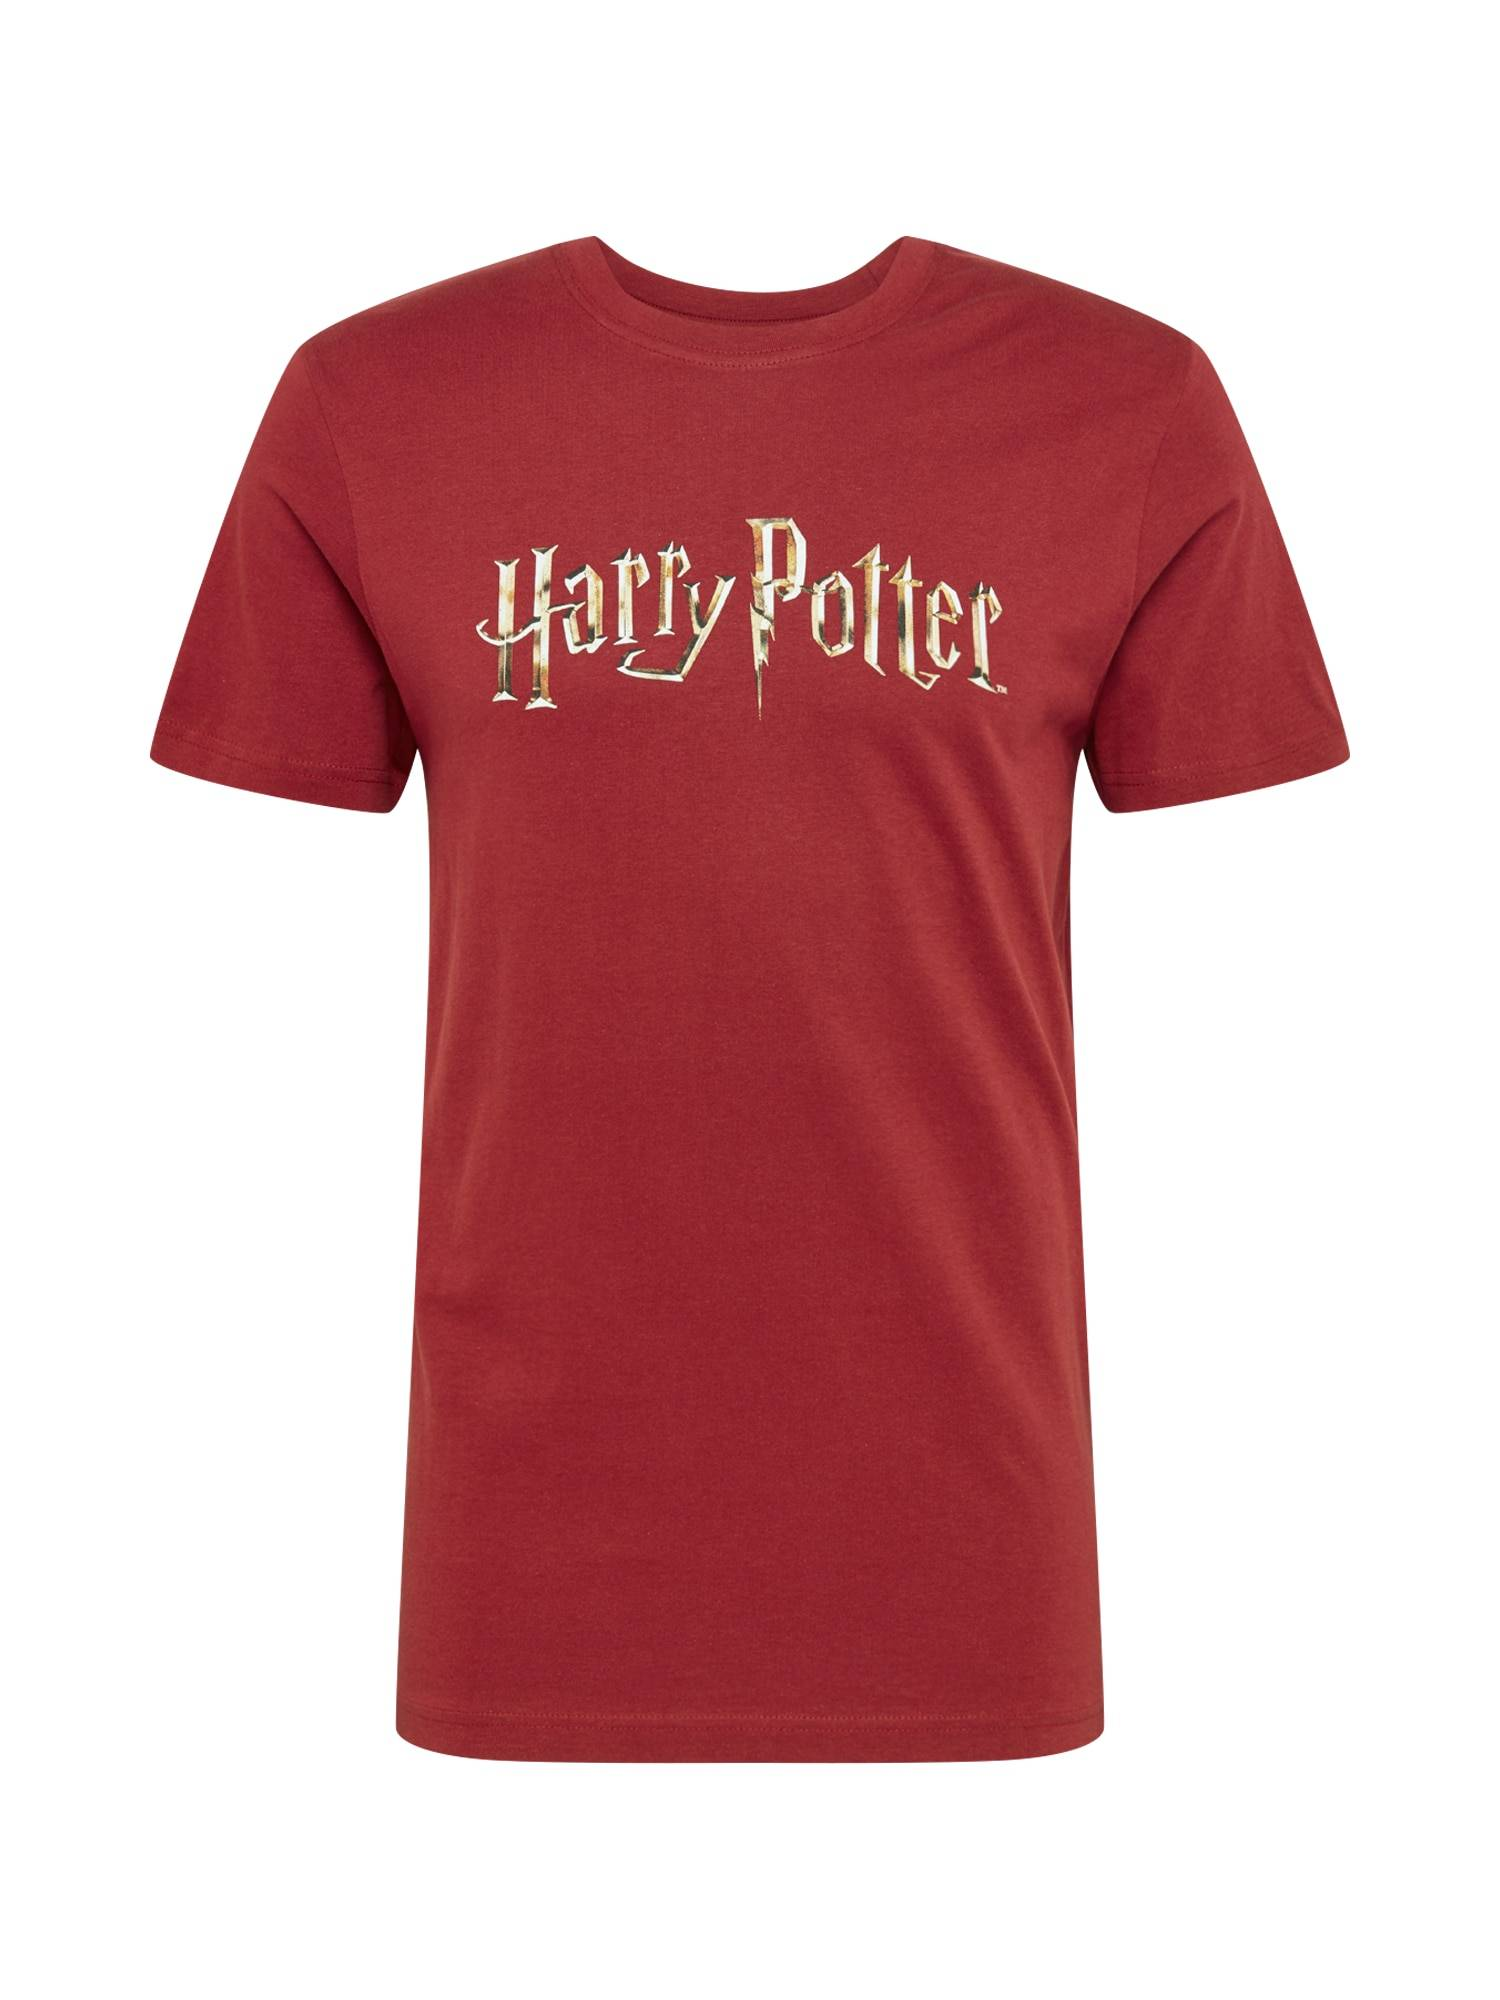 Tee T-Shirt 'Harry Potter'  - Rouge - Taille: XL - male